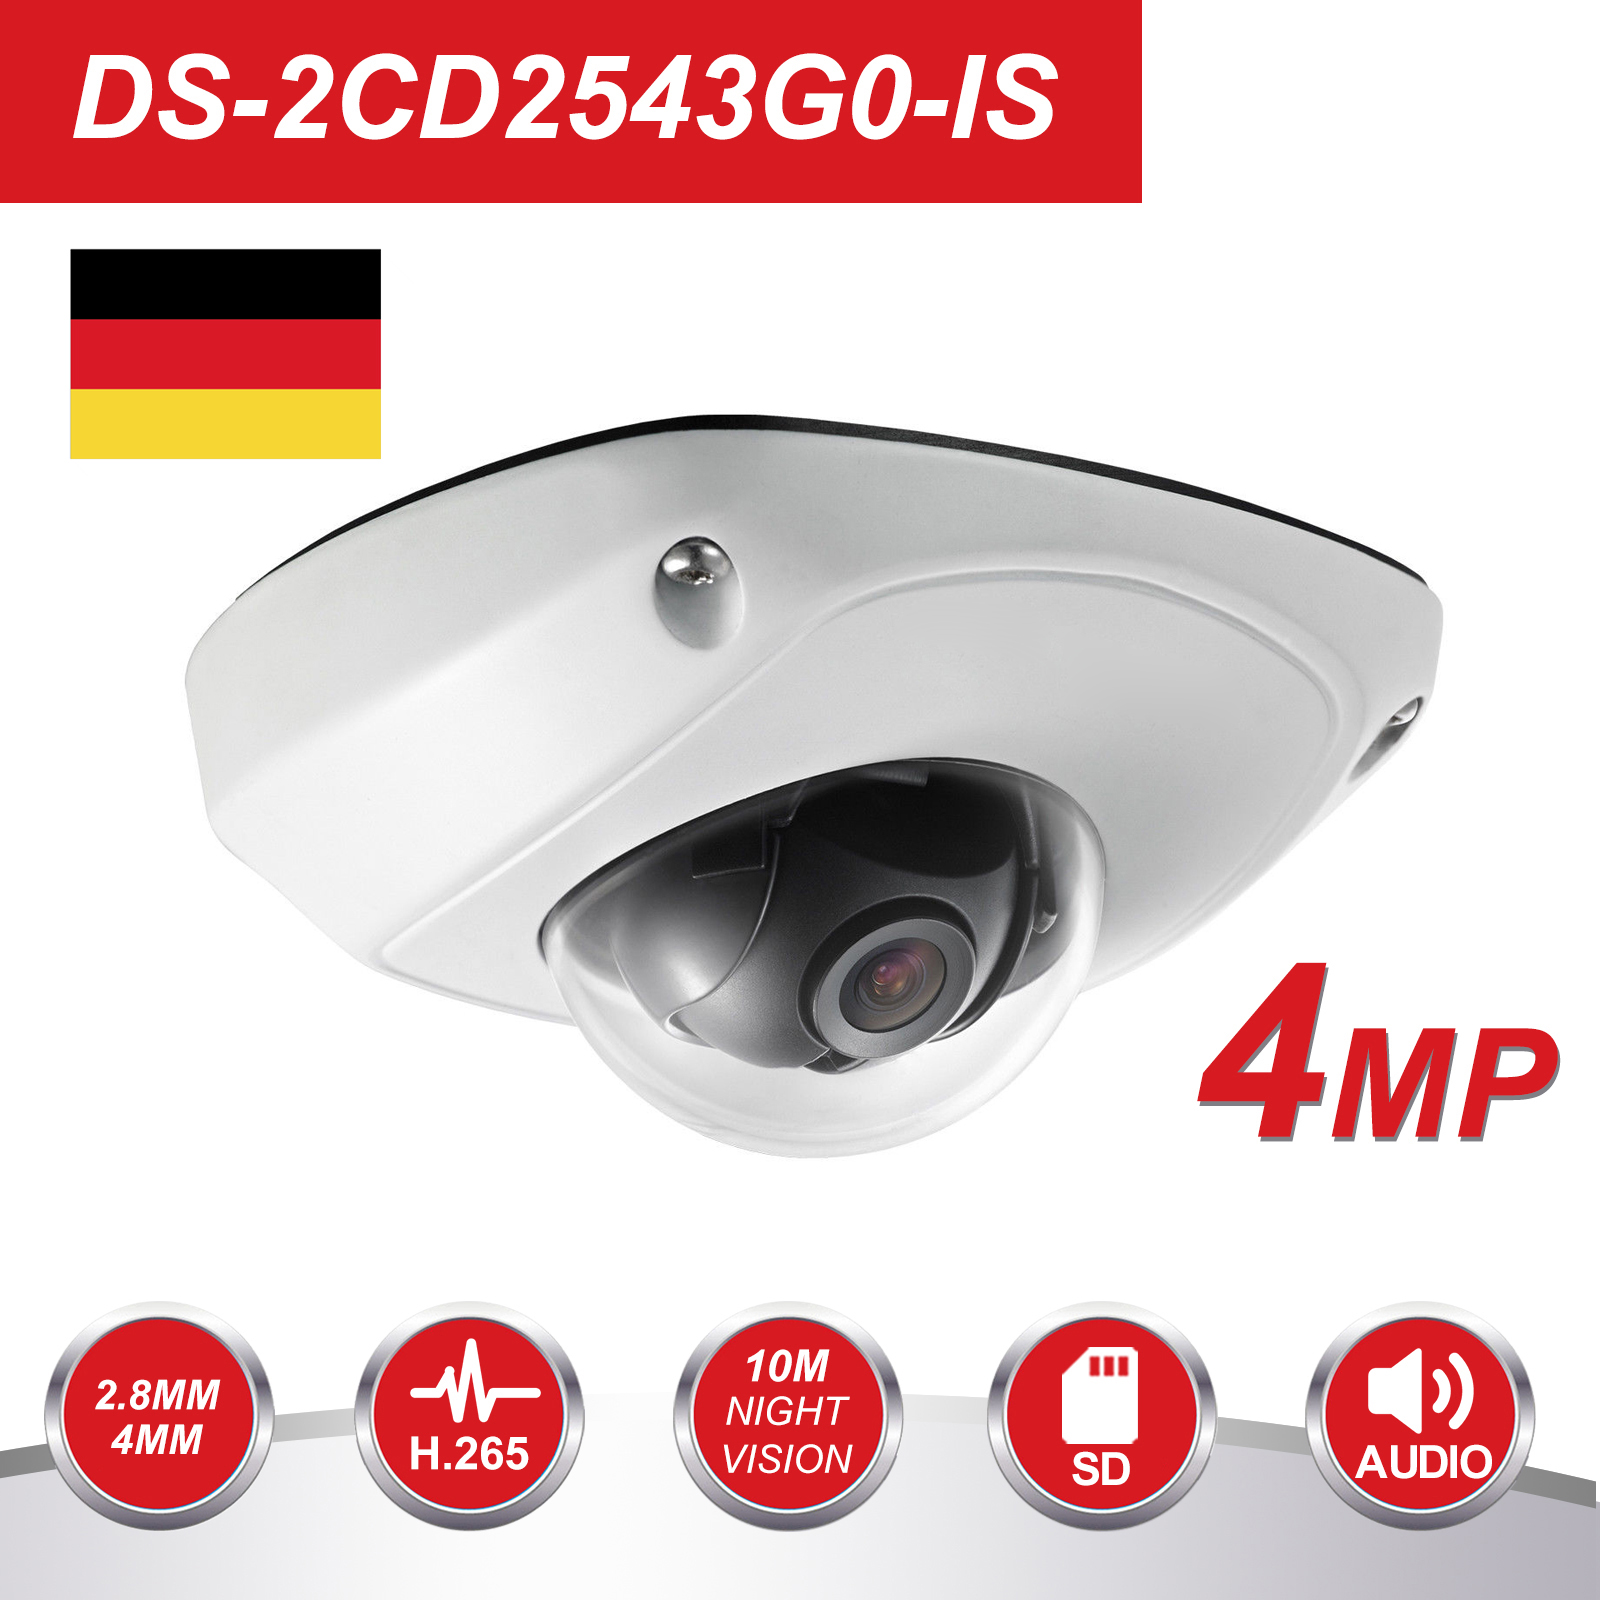 HIK Video Surveillance Camera Outdoor DS 2CD2543G0 IS 4MP IR Fixed Mini Dome Security IP Cameras